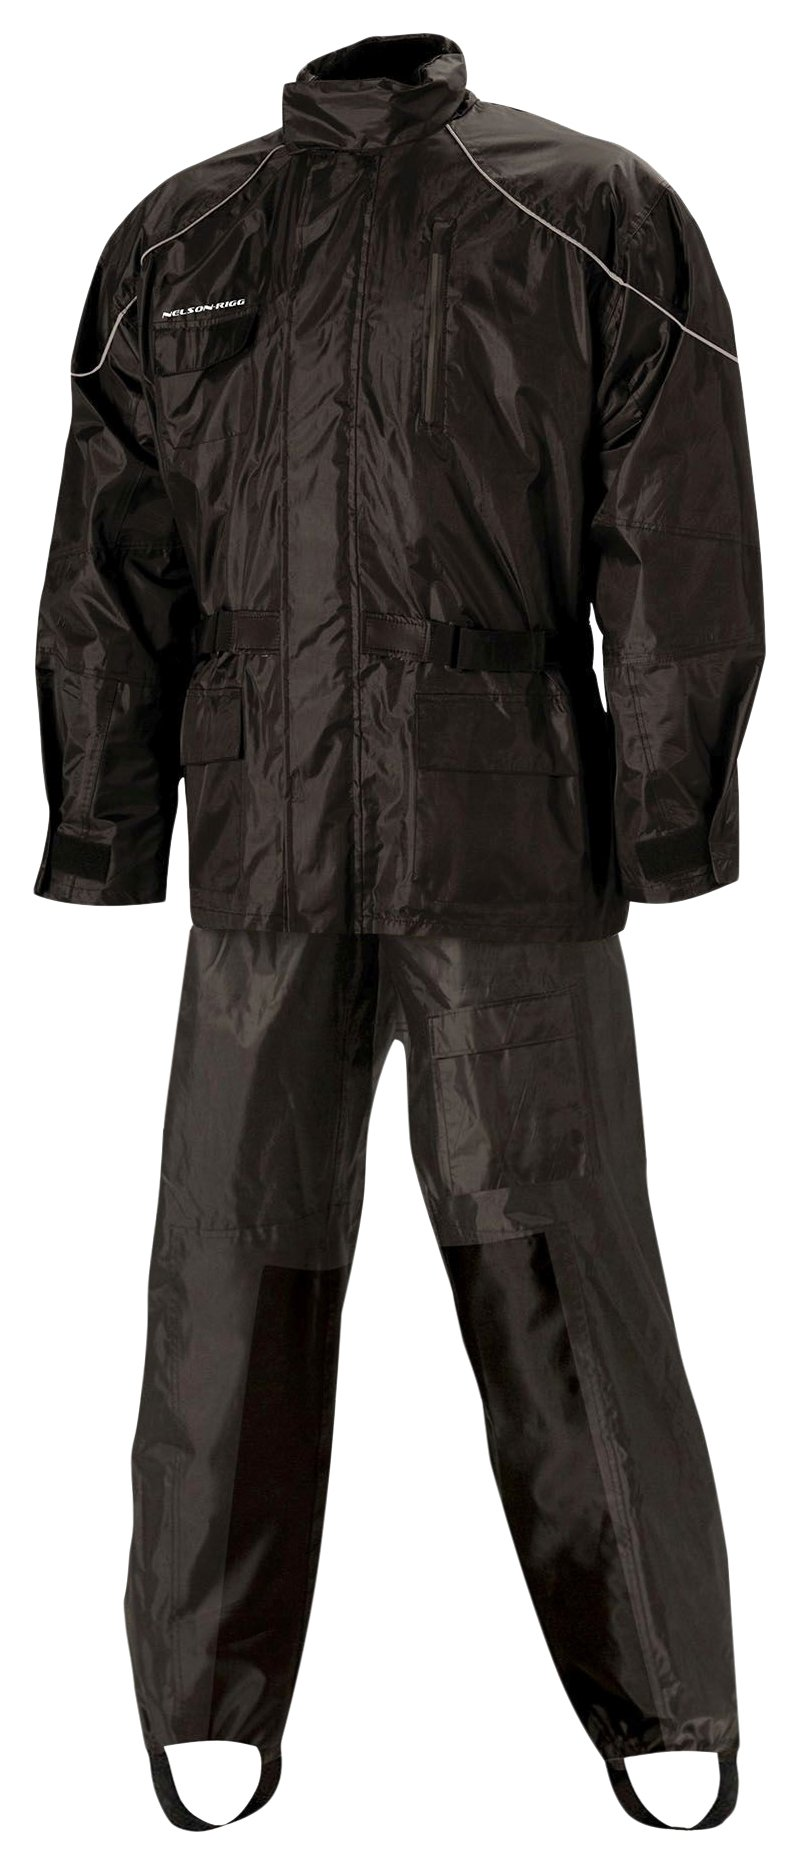 Nelson Rigg Unisex Adult AS-3000-BLK-06-3XL Aston Motorcycle Rain Suit 2-Piece, (Black, XXX-Large), X by Nelson-Rigg (Image #1)